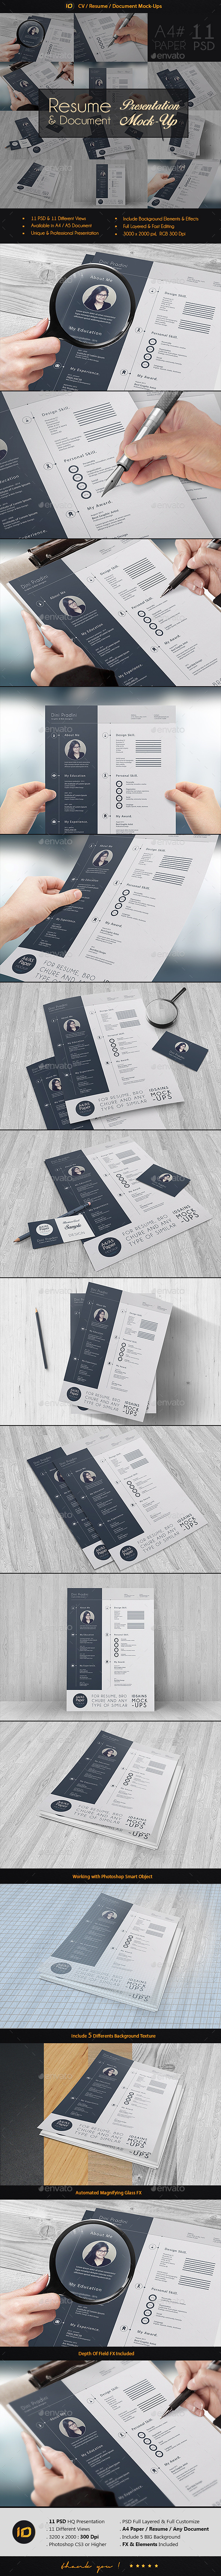 CV / Resume Mock-Up - Print Product Mock-Ups